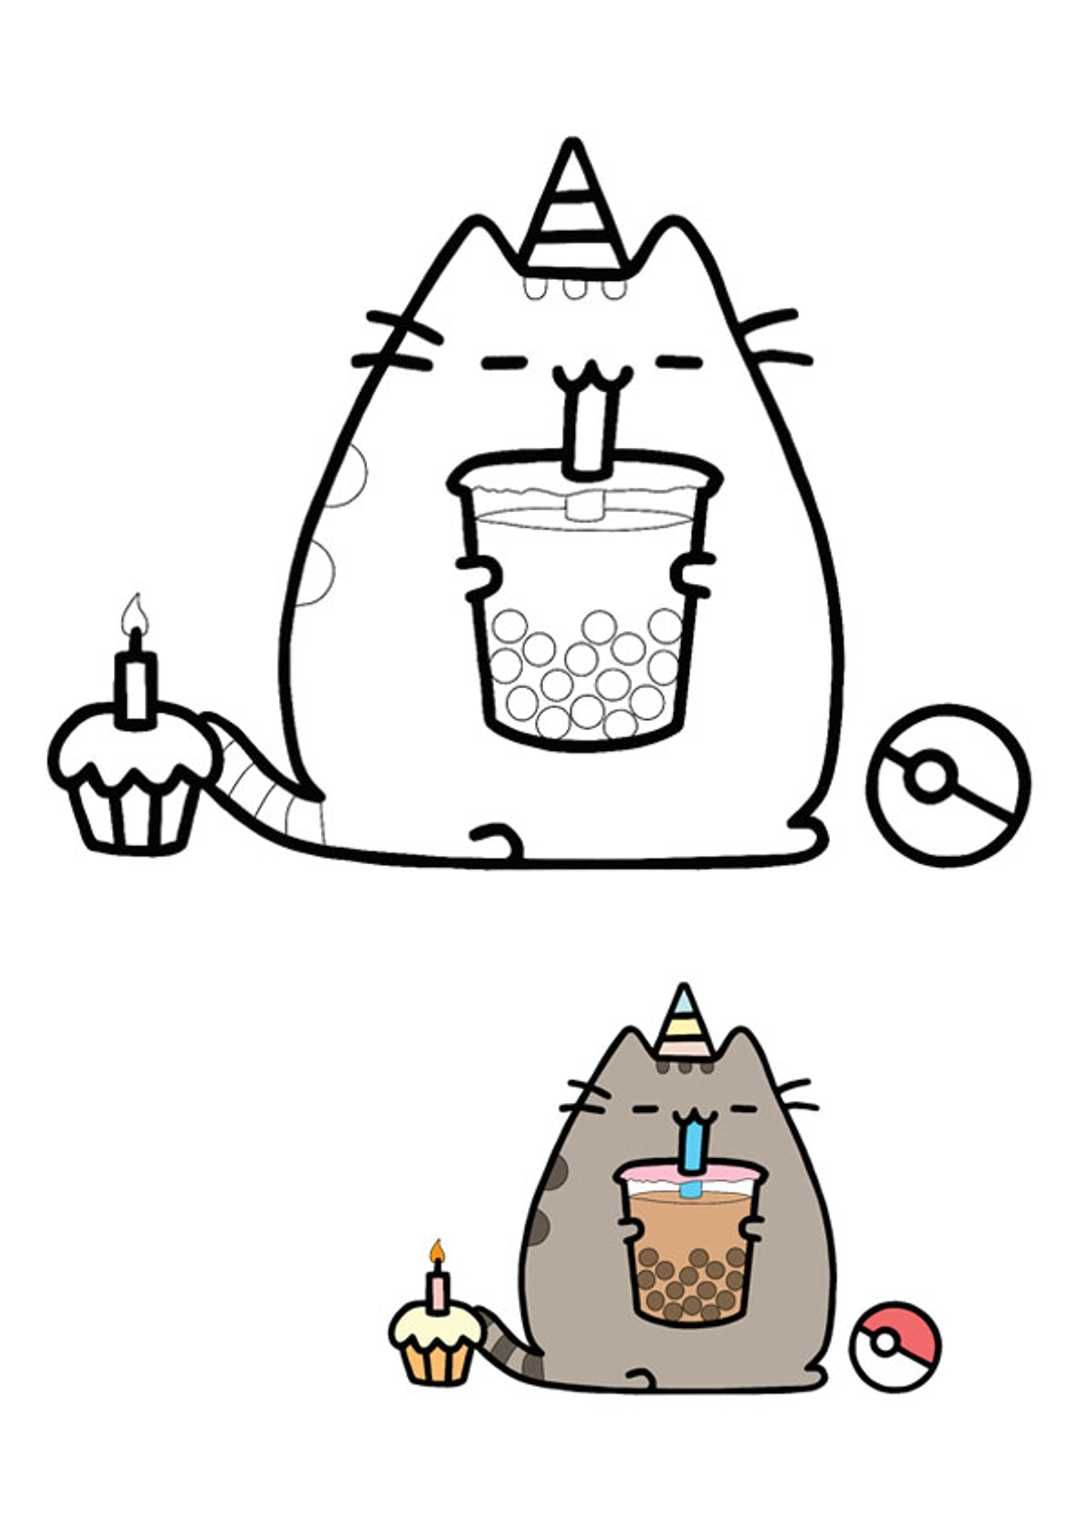 46++ Pusheen cat mermaid coloring pages information